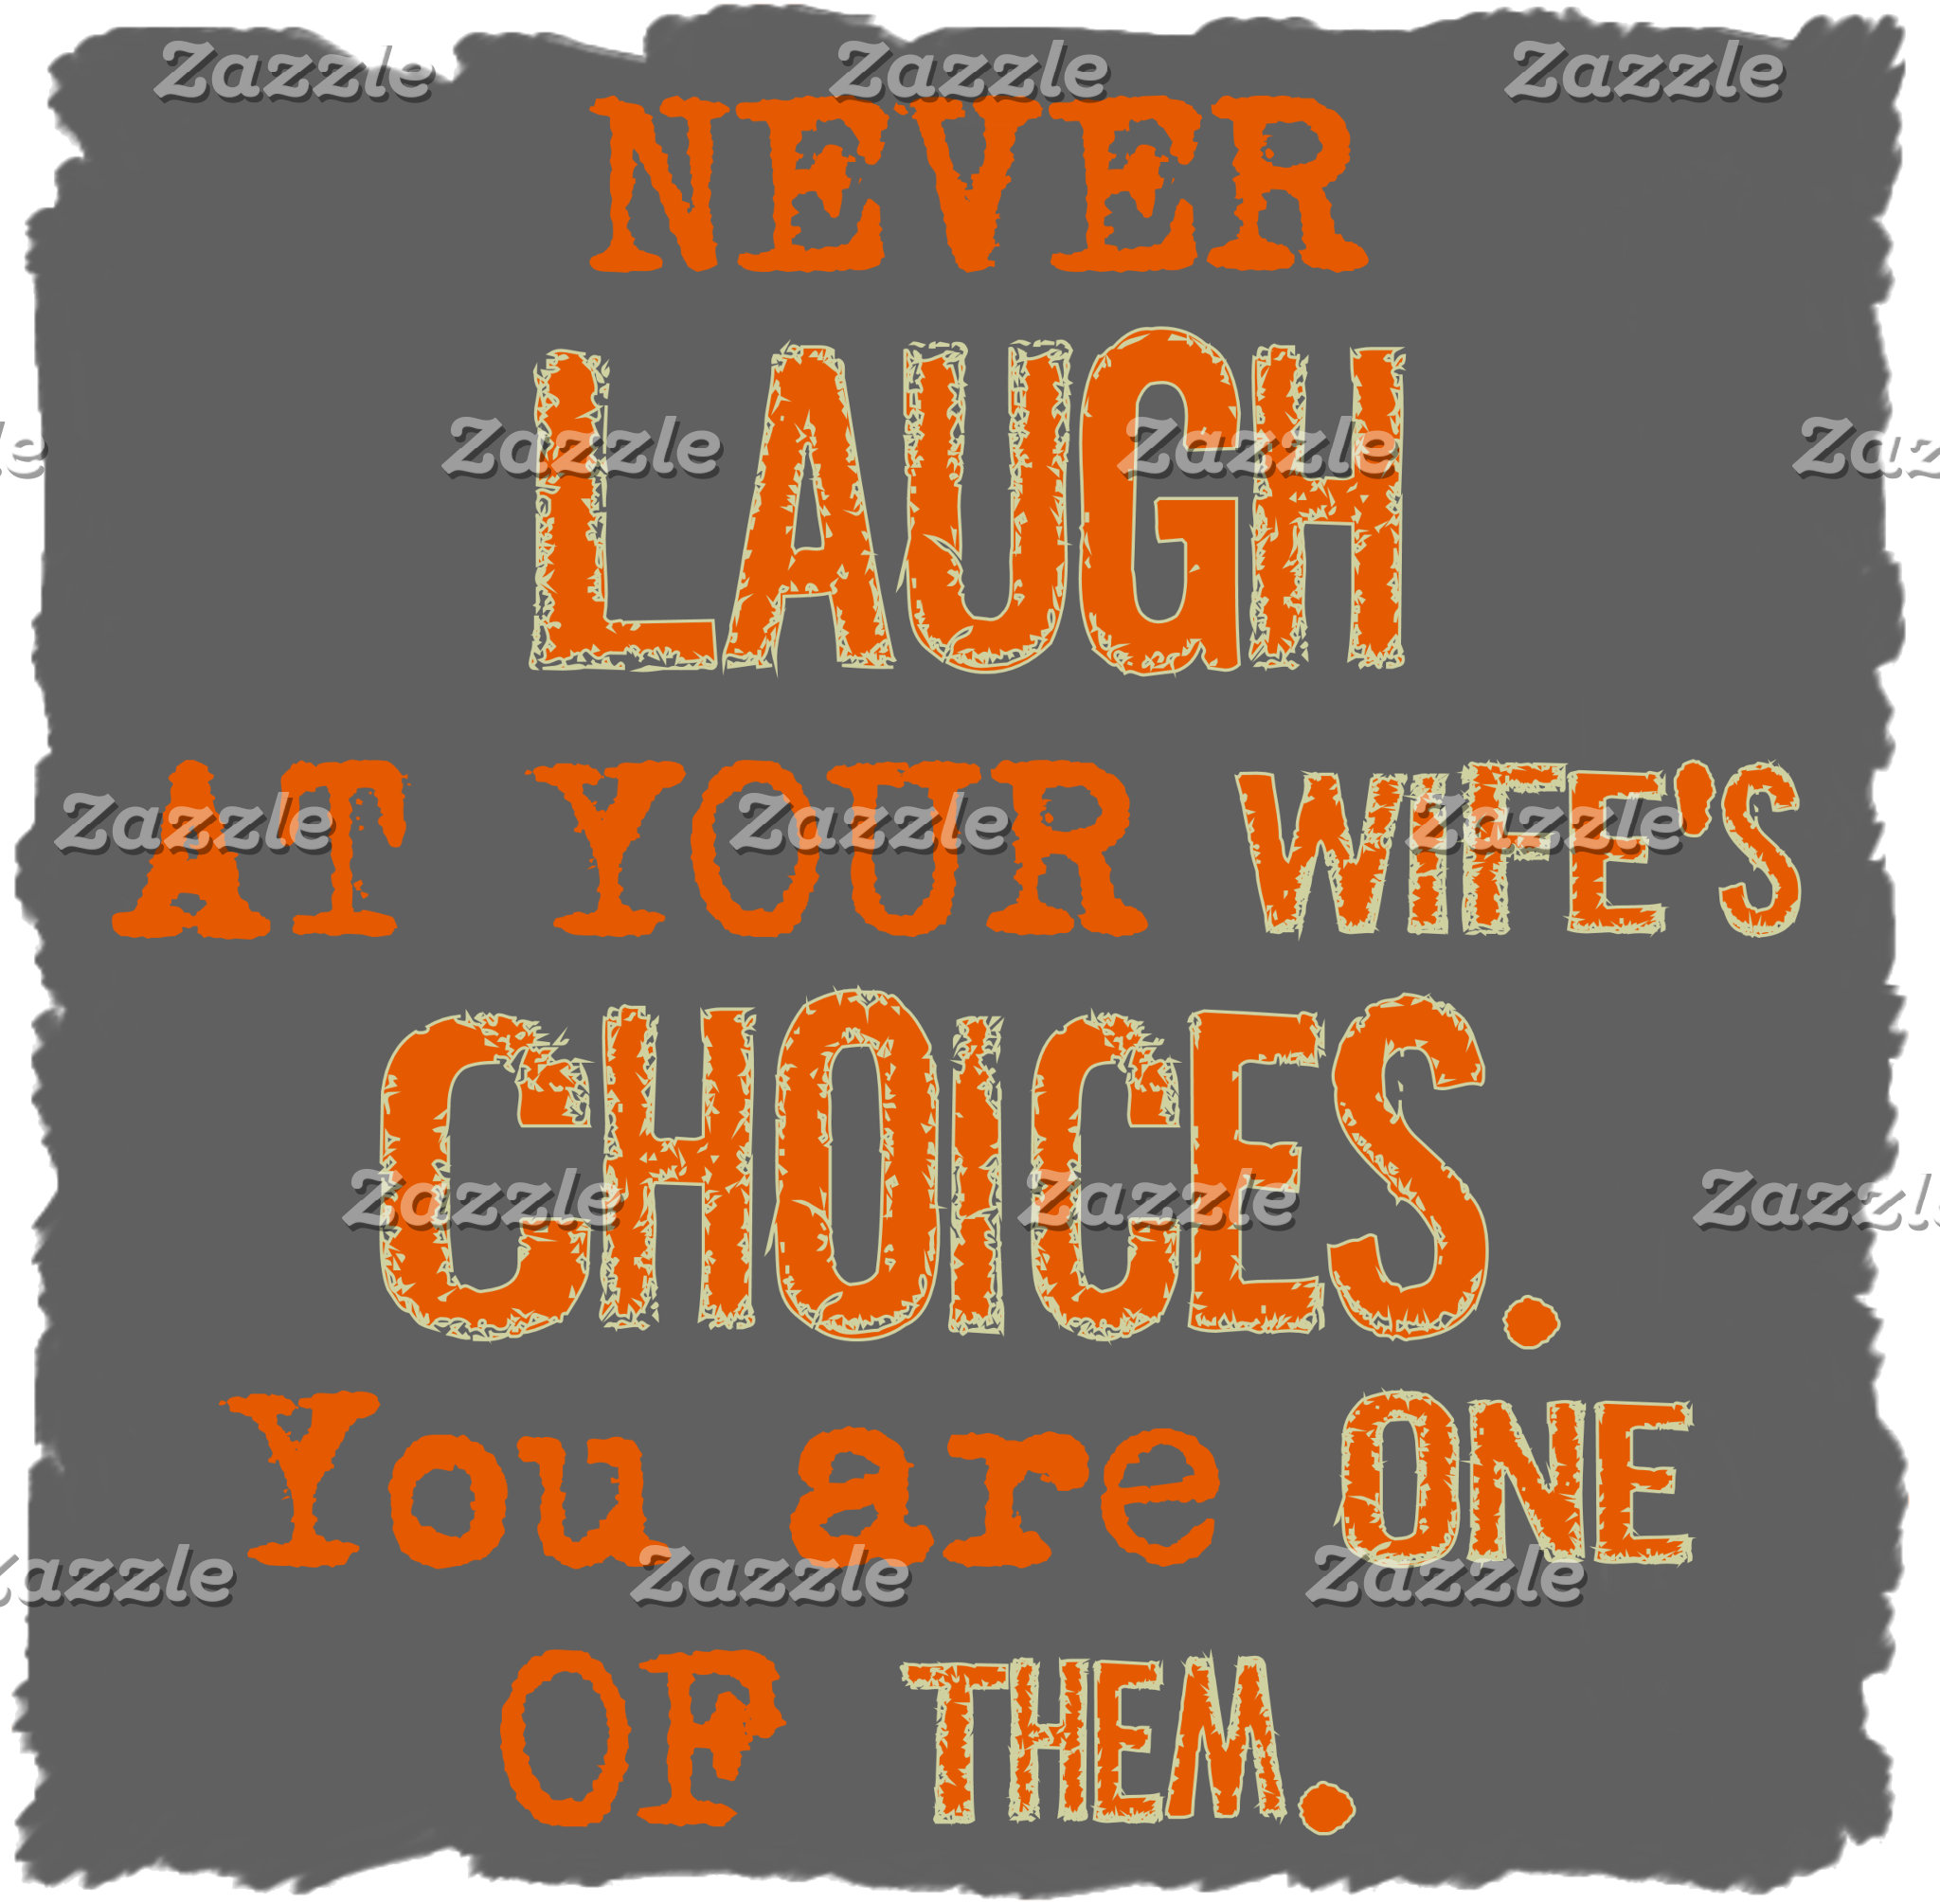 Never Laugh At Wife's Choices